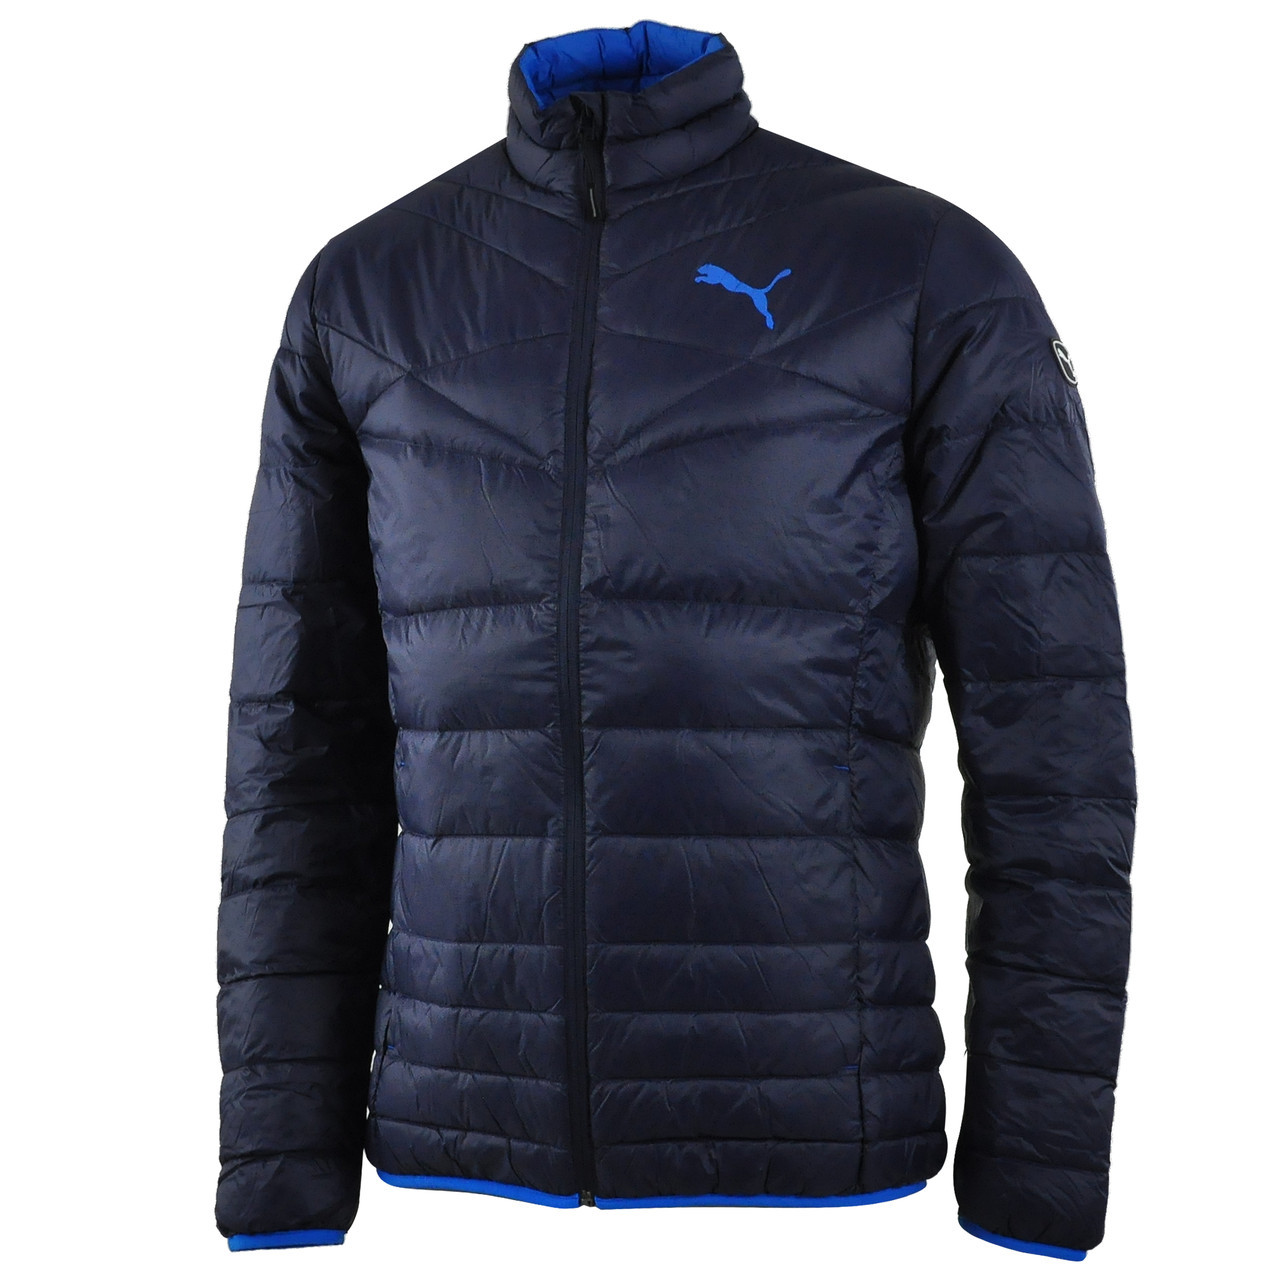 33fe63c5d401af Куртка (пуховик) мужская Puma VESTE ACTIVE 600 PACKLITE DOWN JACKET - ONE  POUND в